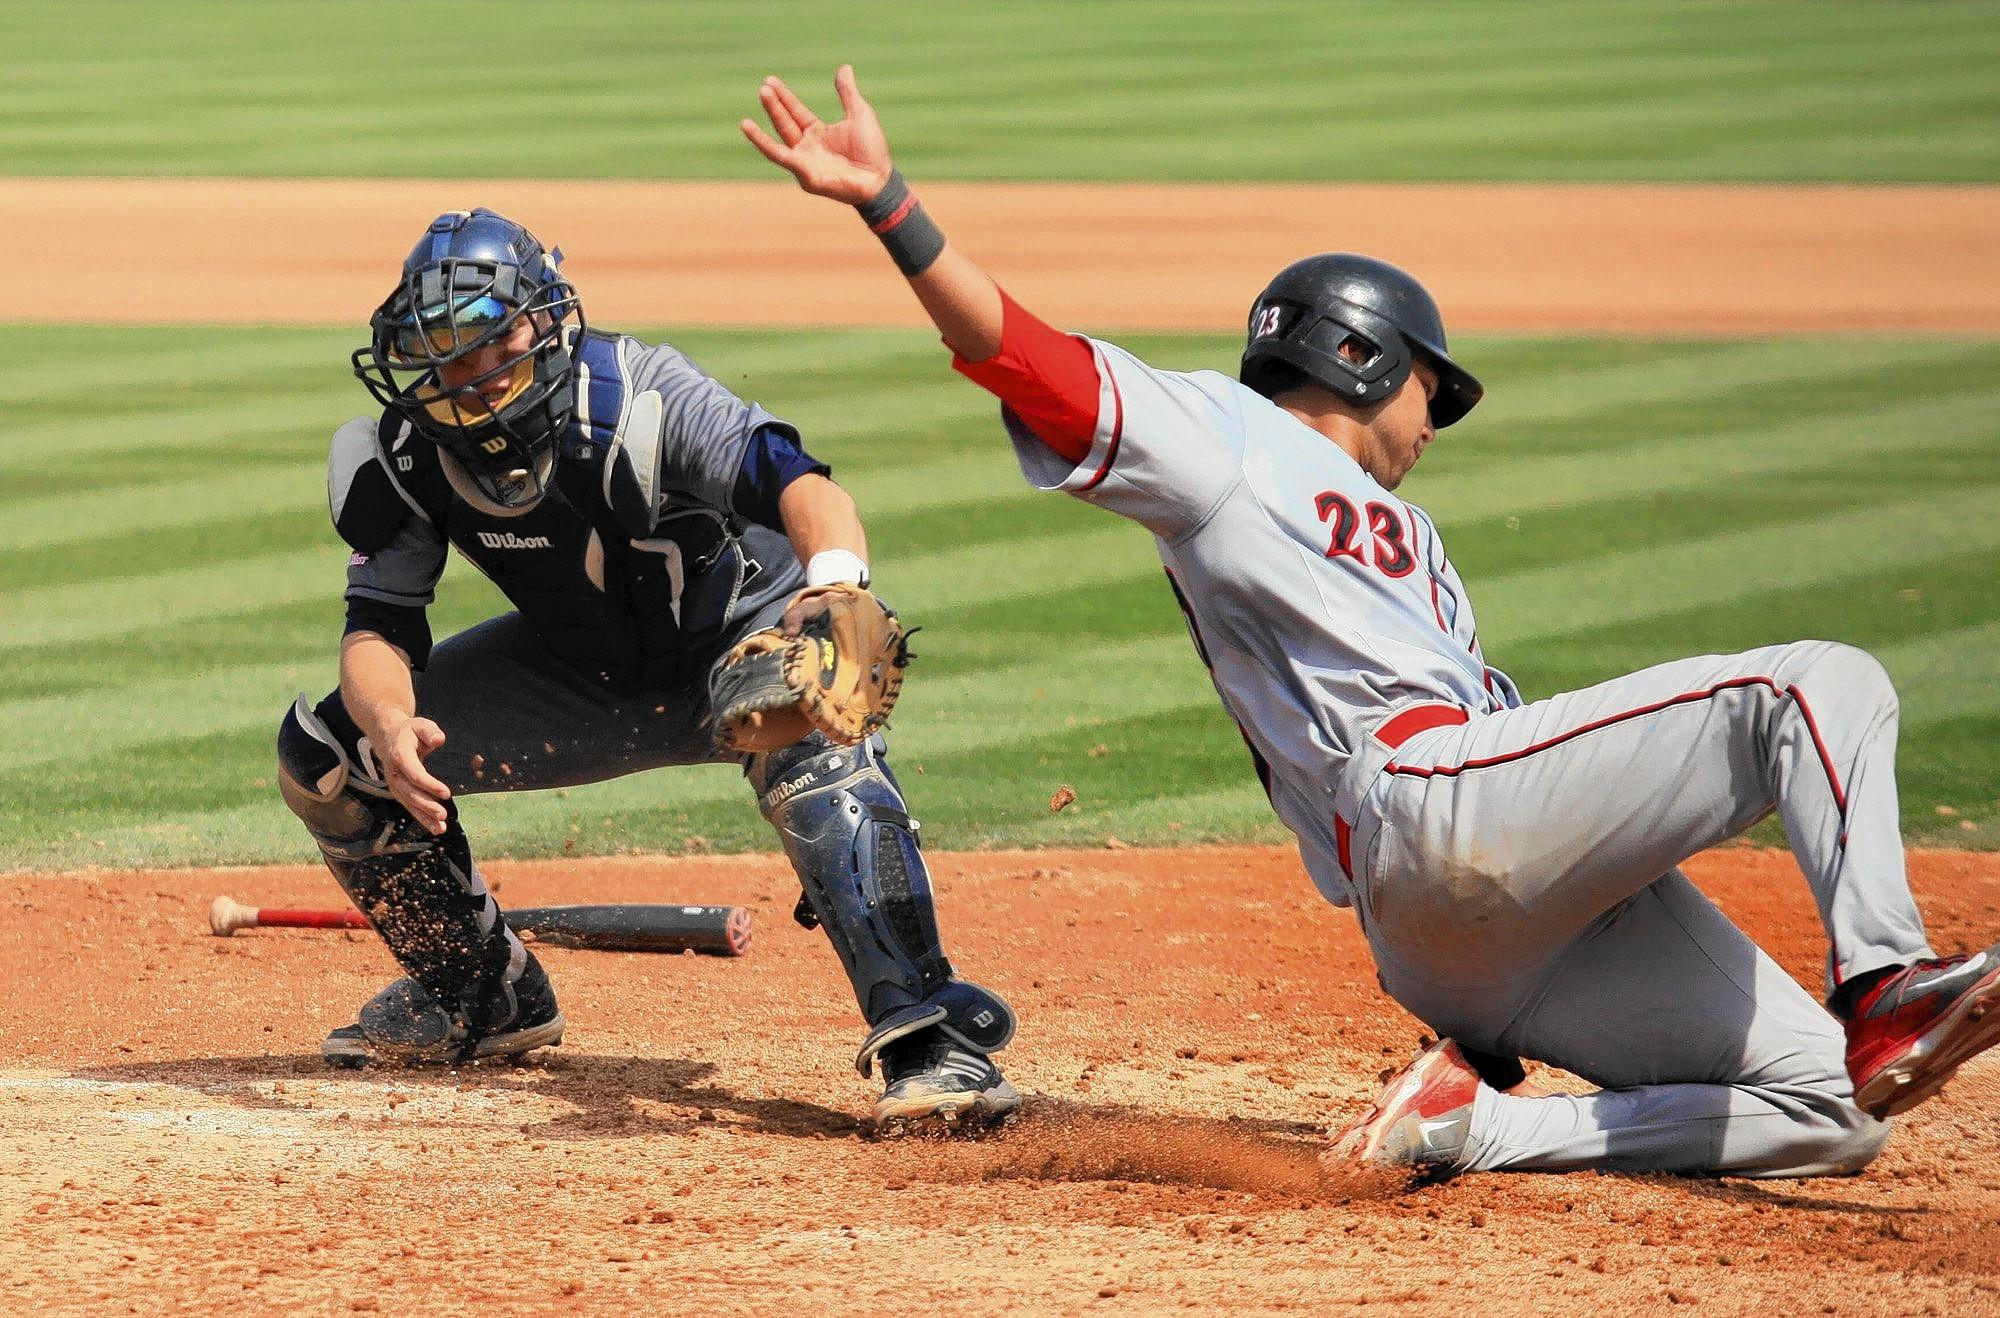 UC Irvine catcher Jerry McClanahan, left, is short of a tag on San Diego State's Brad Haynal at home plate during the seventh inning in a nonconference game at Anteater Ballpark on Saturday. The Anteaters lost 4-3.